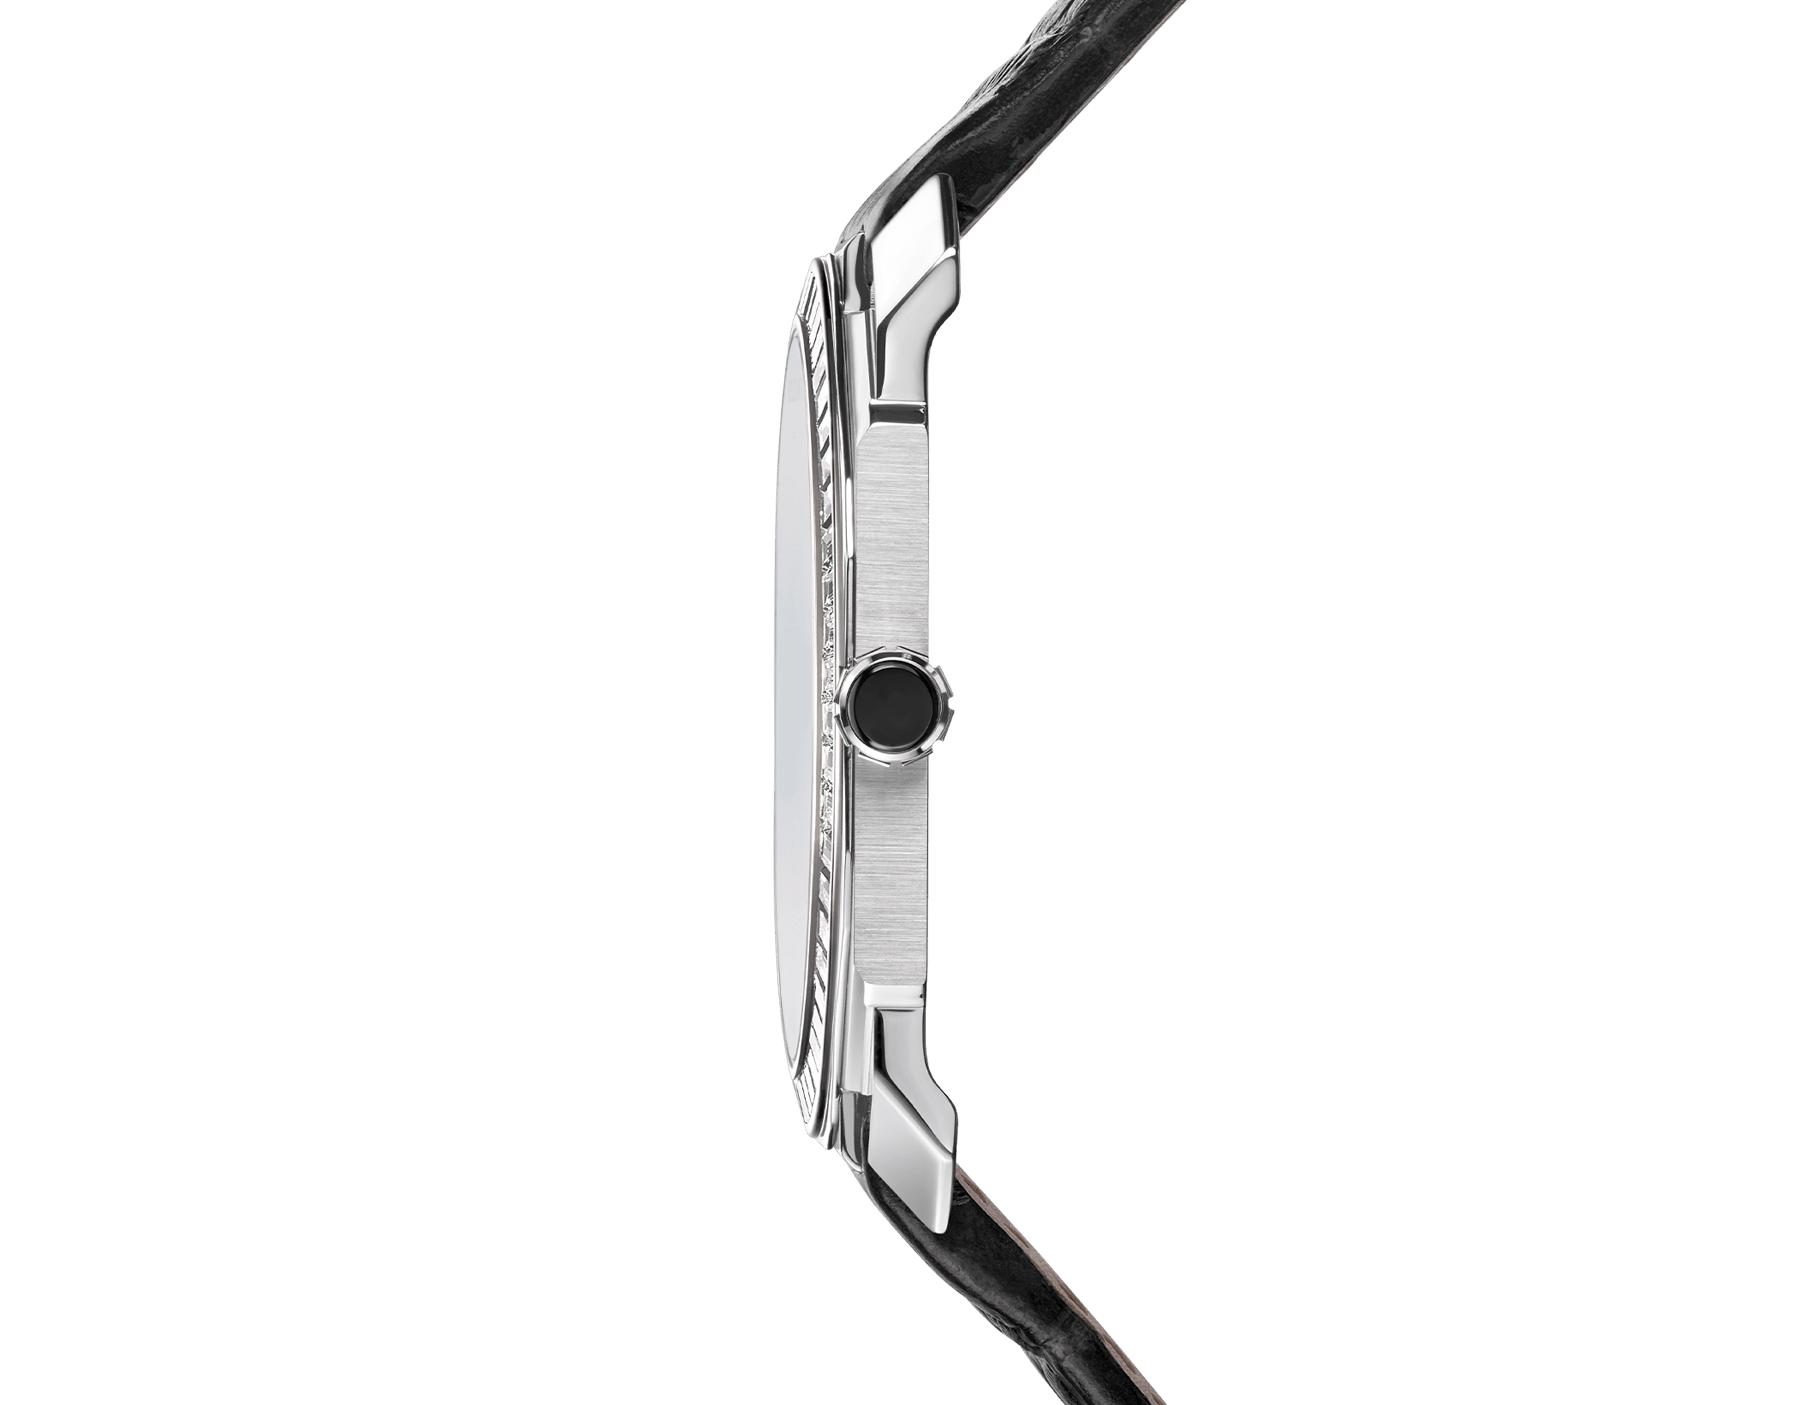 Octo Finissimo Tourbillon Limited Edition watch with extra thin mechanical manufacture movement and manual winding, platinum case, bezel set with baguette-cut diamonds, black lacquered dial with tourbillon see-through opening and black alligator bracelet. 102401 image 3